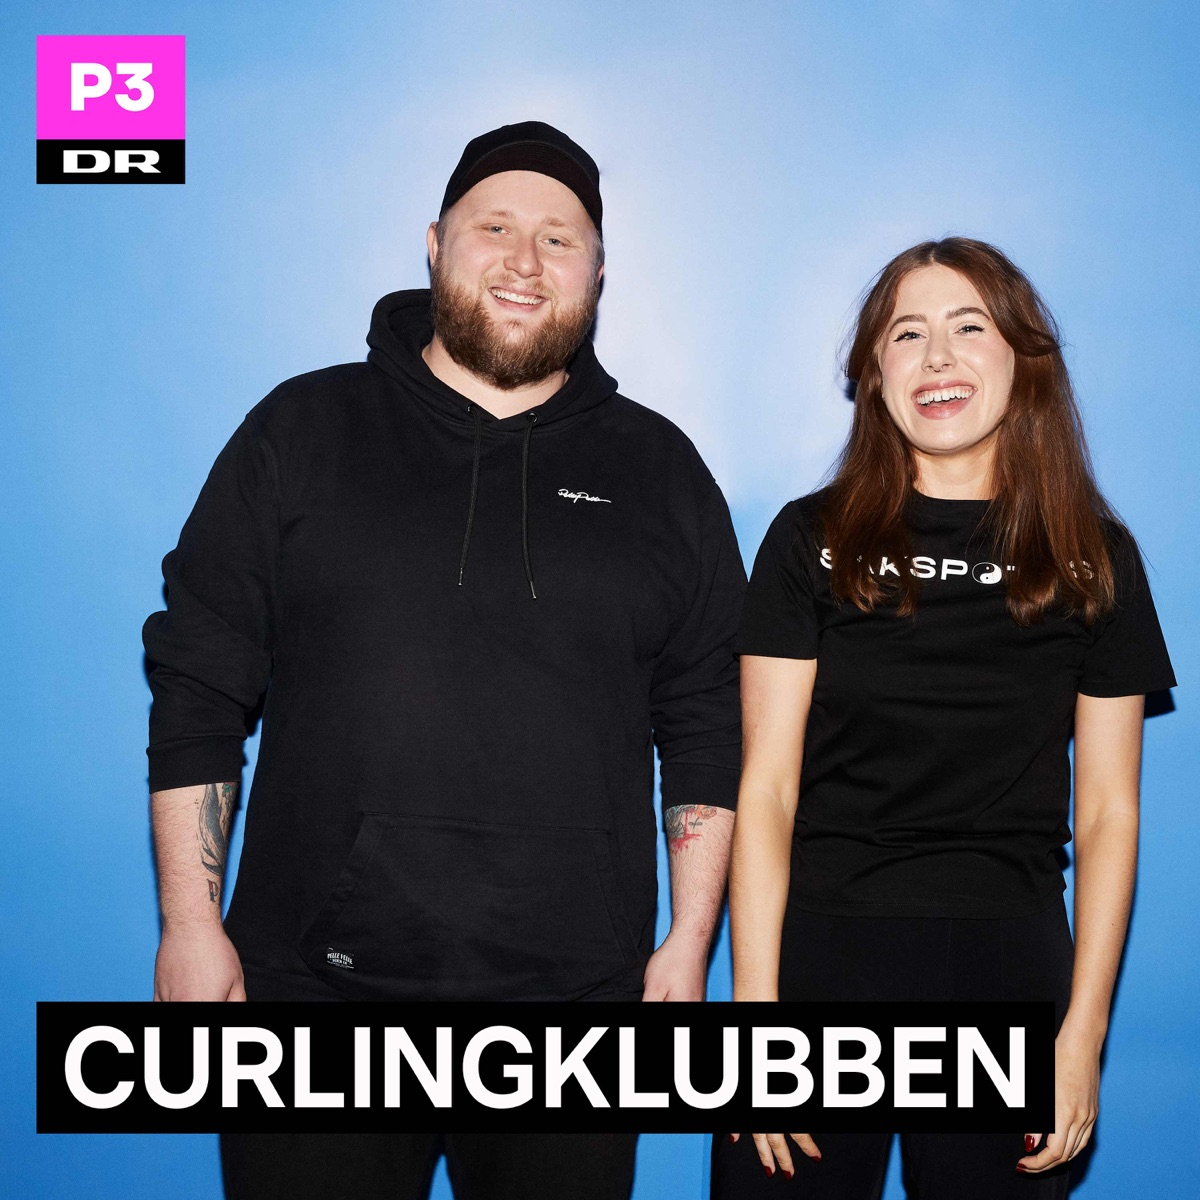 Curlingklubben... Teknisk set 5 - 3. jul 2020